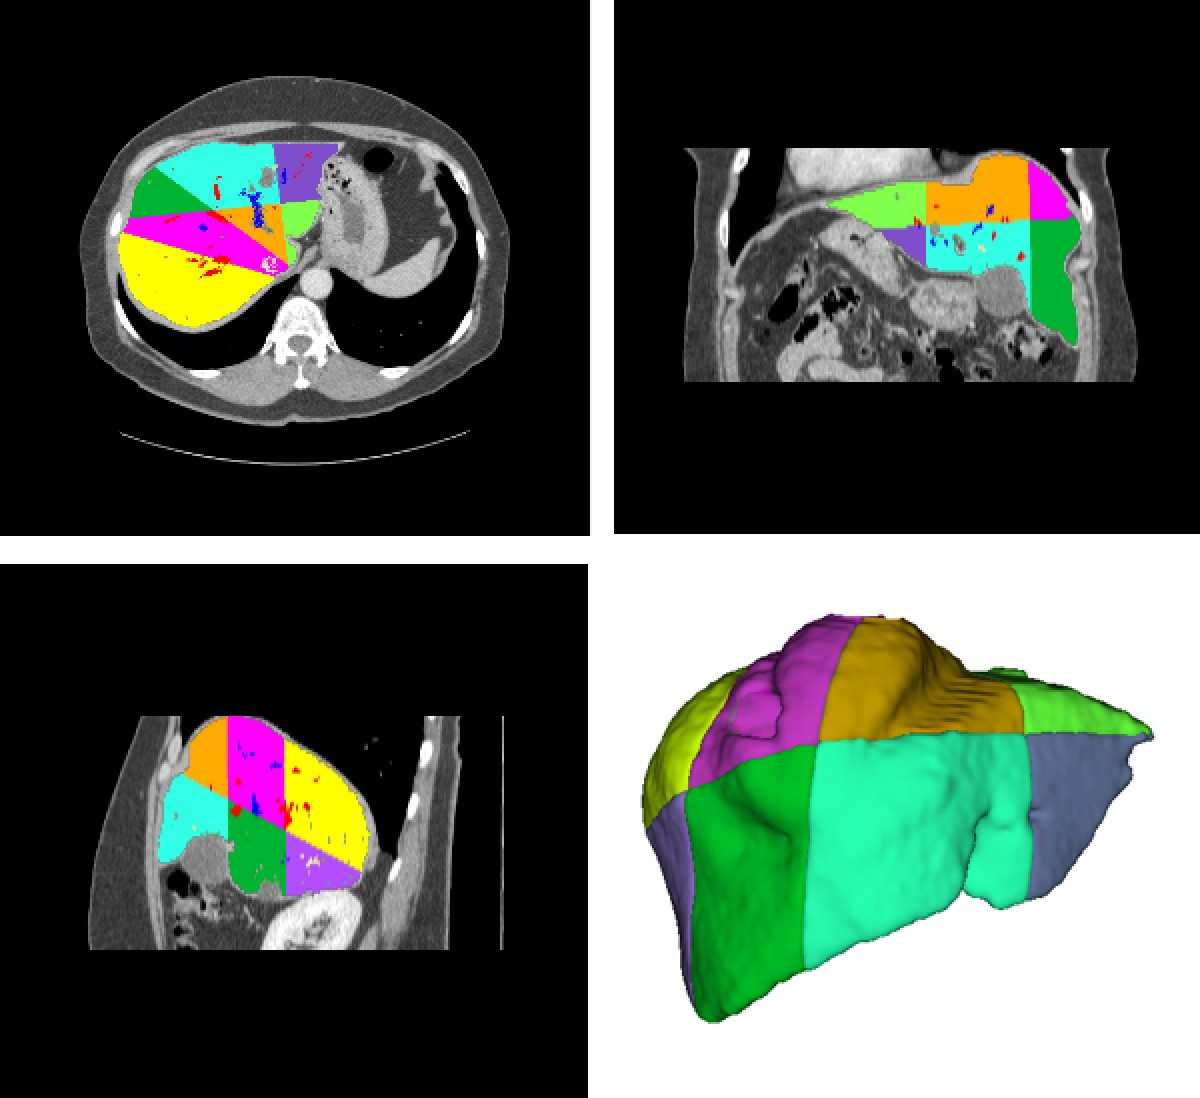 Segmentation Of Liver Its Vessels And Lesions From Ct Images For